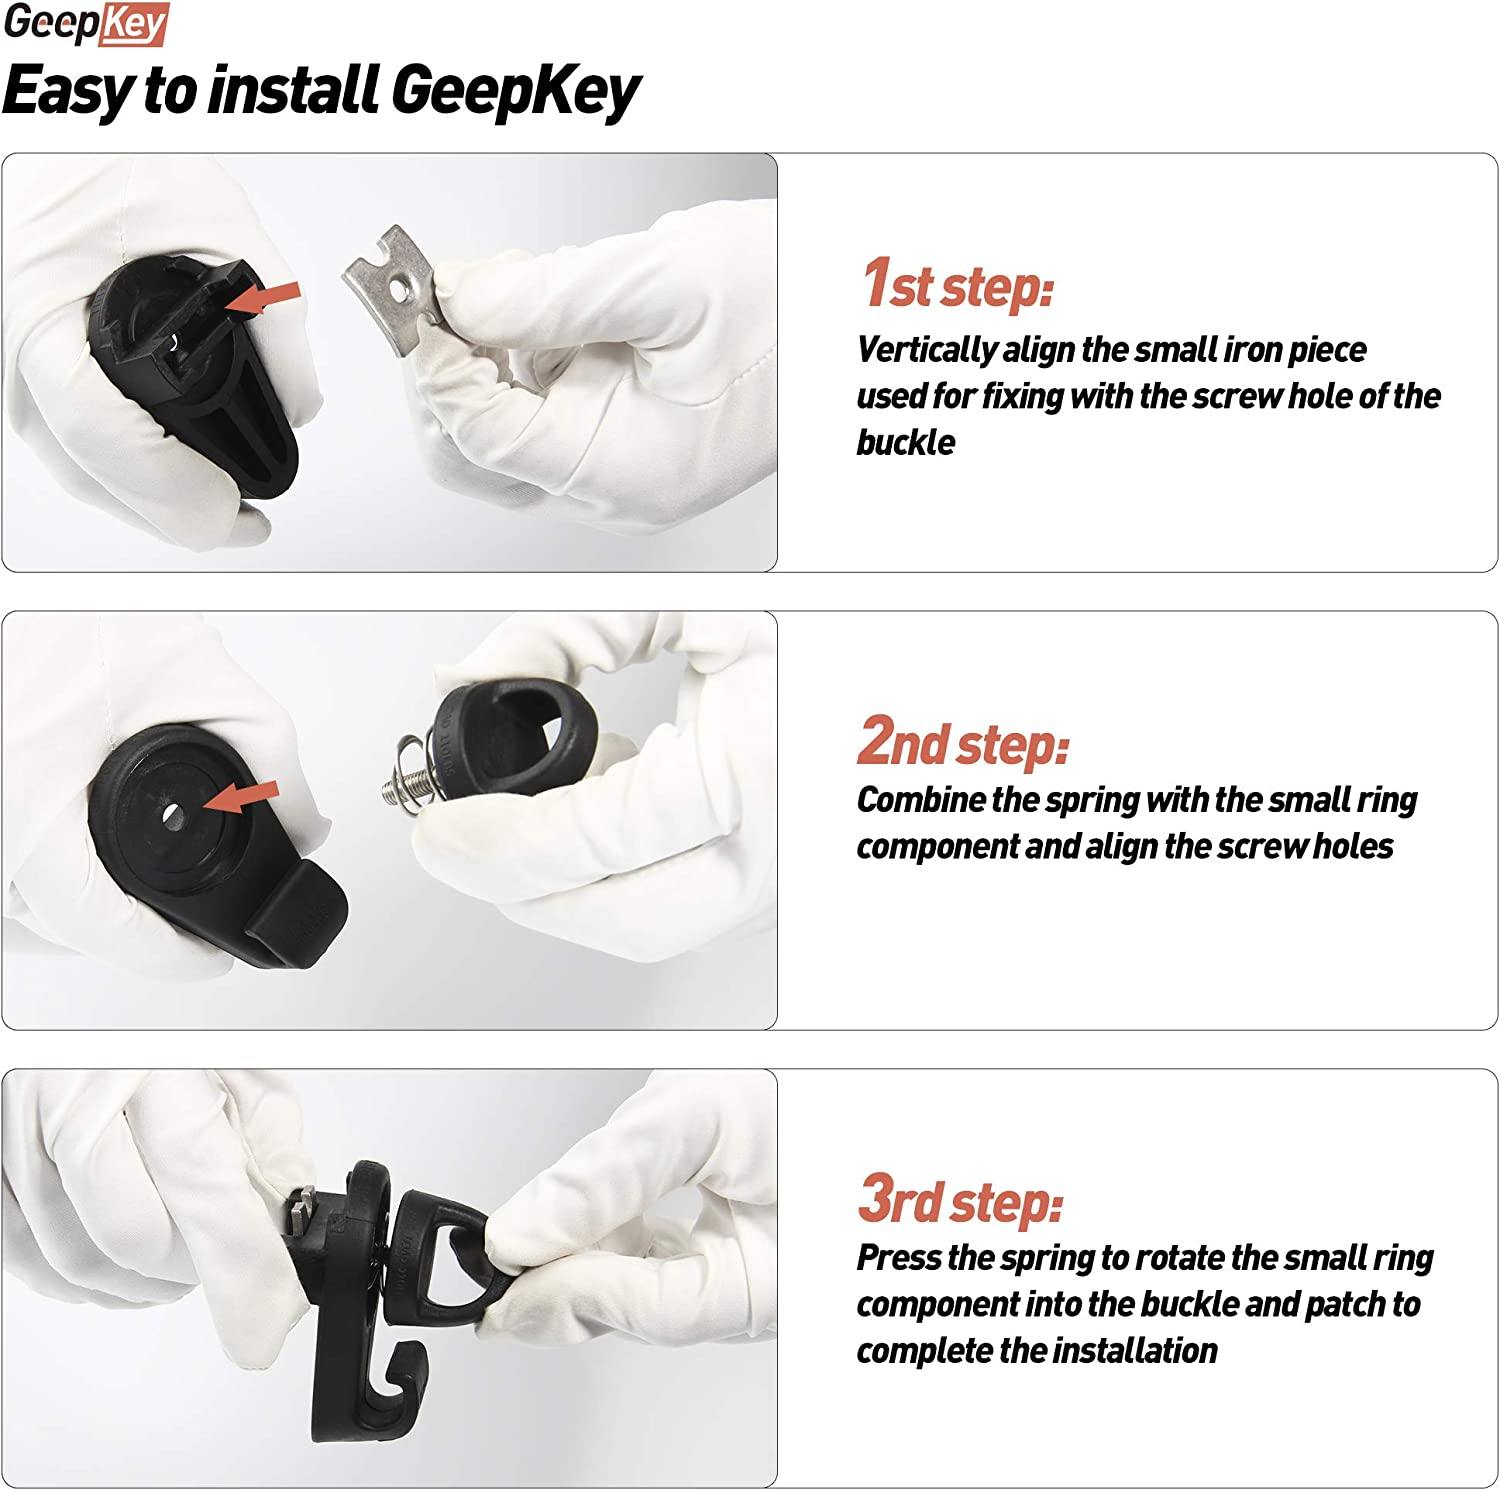 GeepKey Replacement for Mini Tie-Down with Hooks Fits Tacoma /& Tundra PT278-35075 4PCS